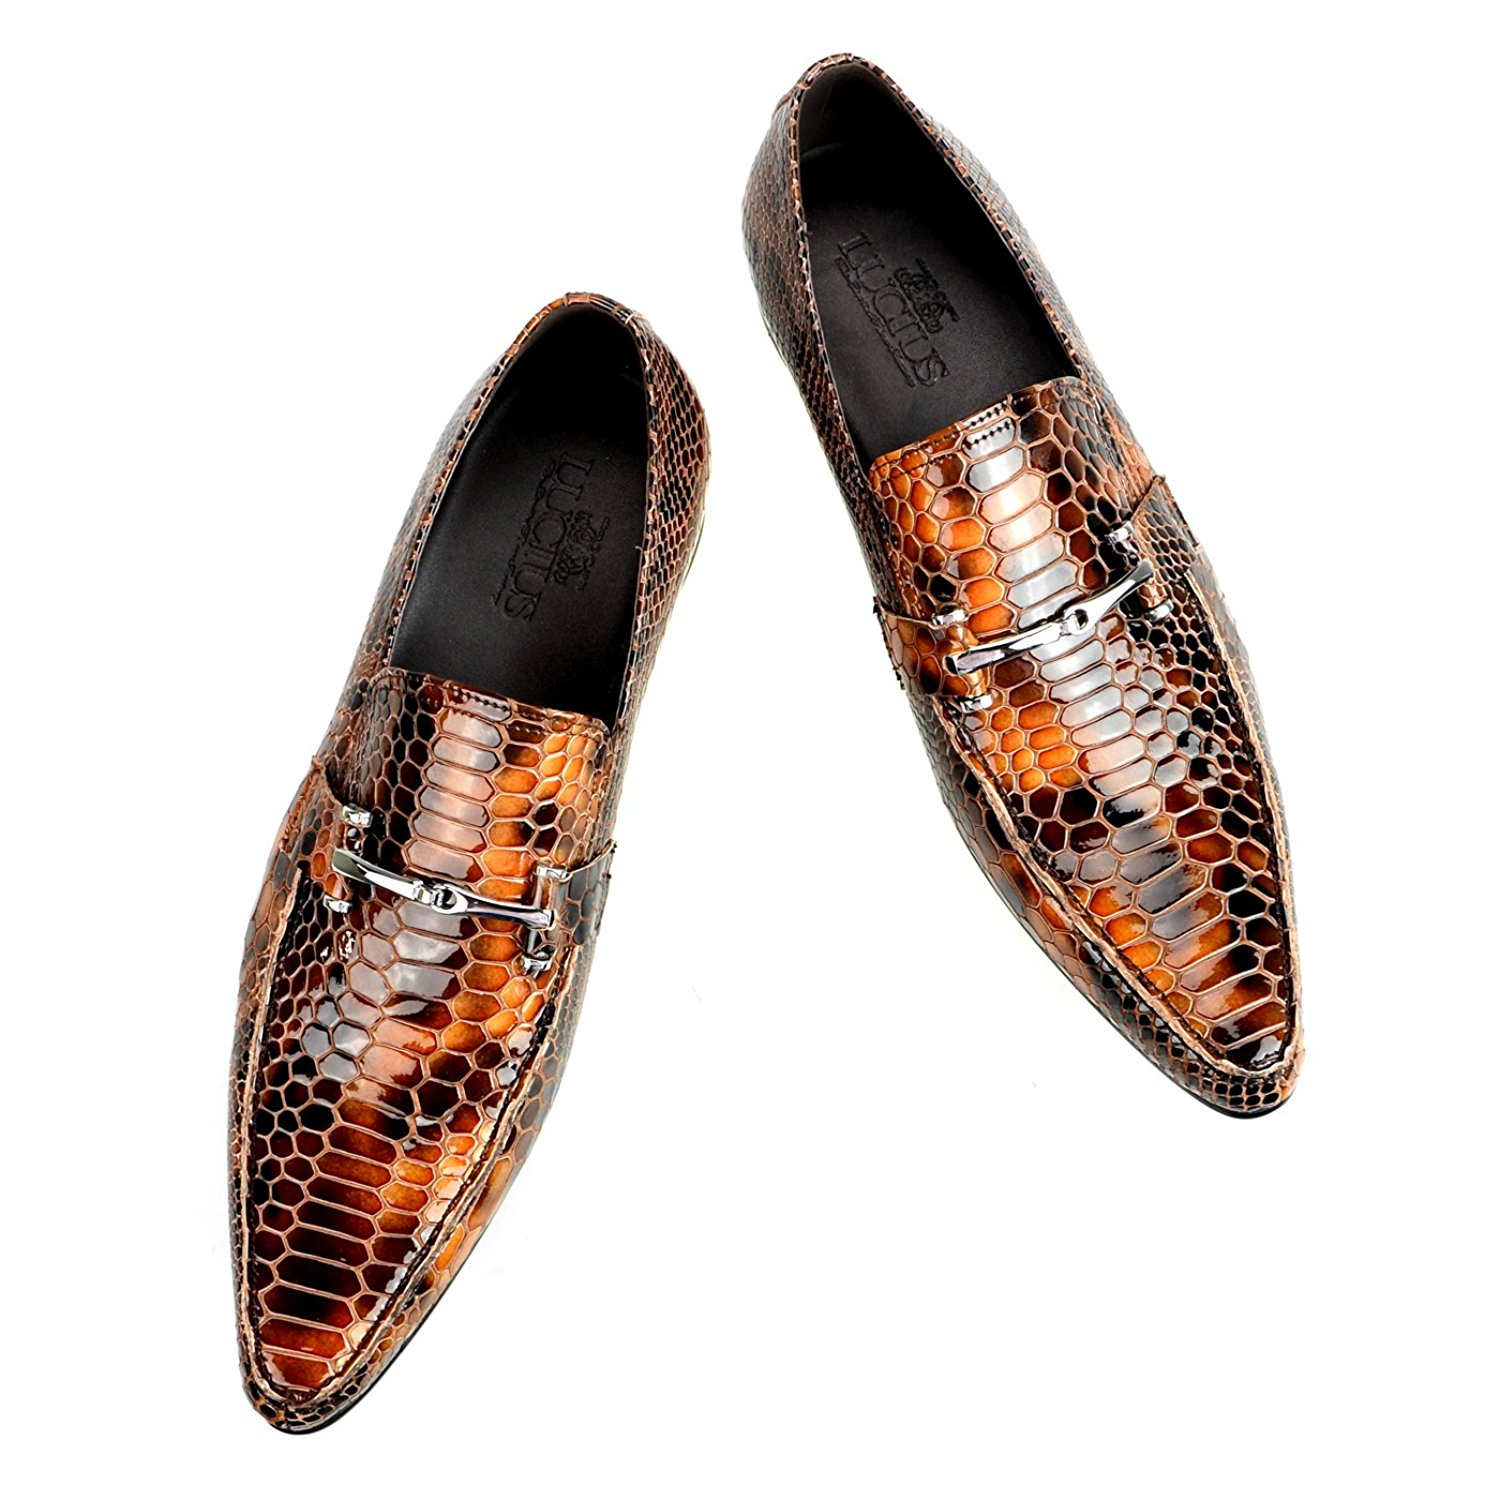 Lucius Men's Leather Dress Shoes Oxford Lizard Embossing Bit Loafers Slip-On Opera Shoes Brown